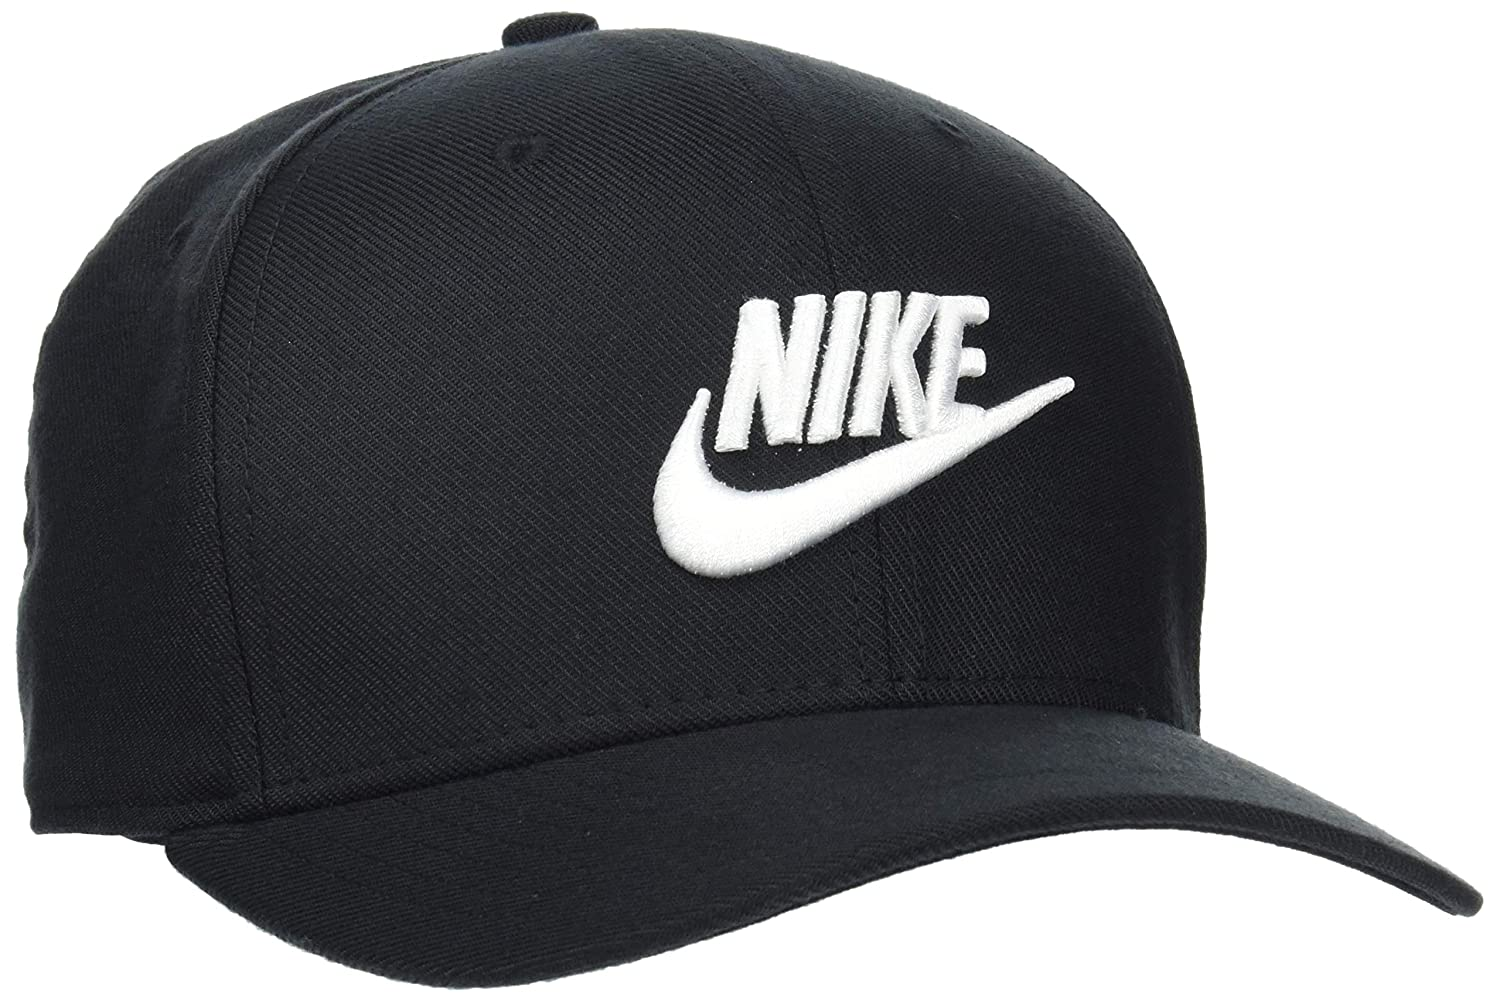 23c329df204 Amazon.com   Nike Sportswear Classic 99 Cap Black White Size Medium Large    Sports   Outdoors